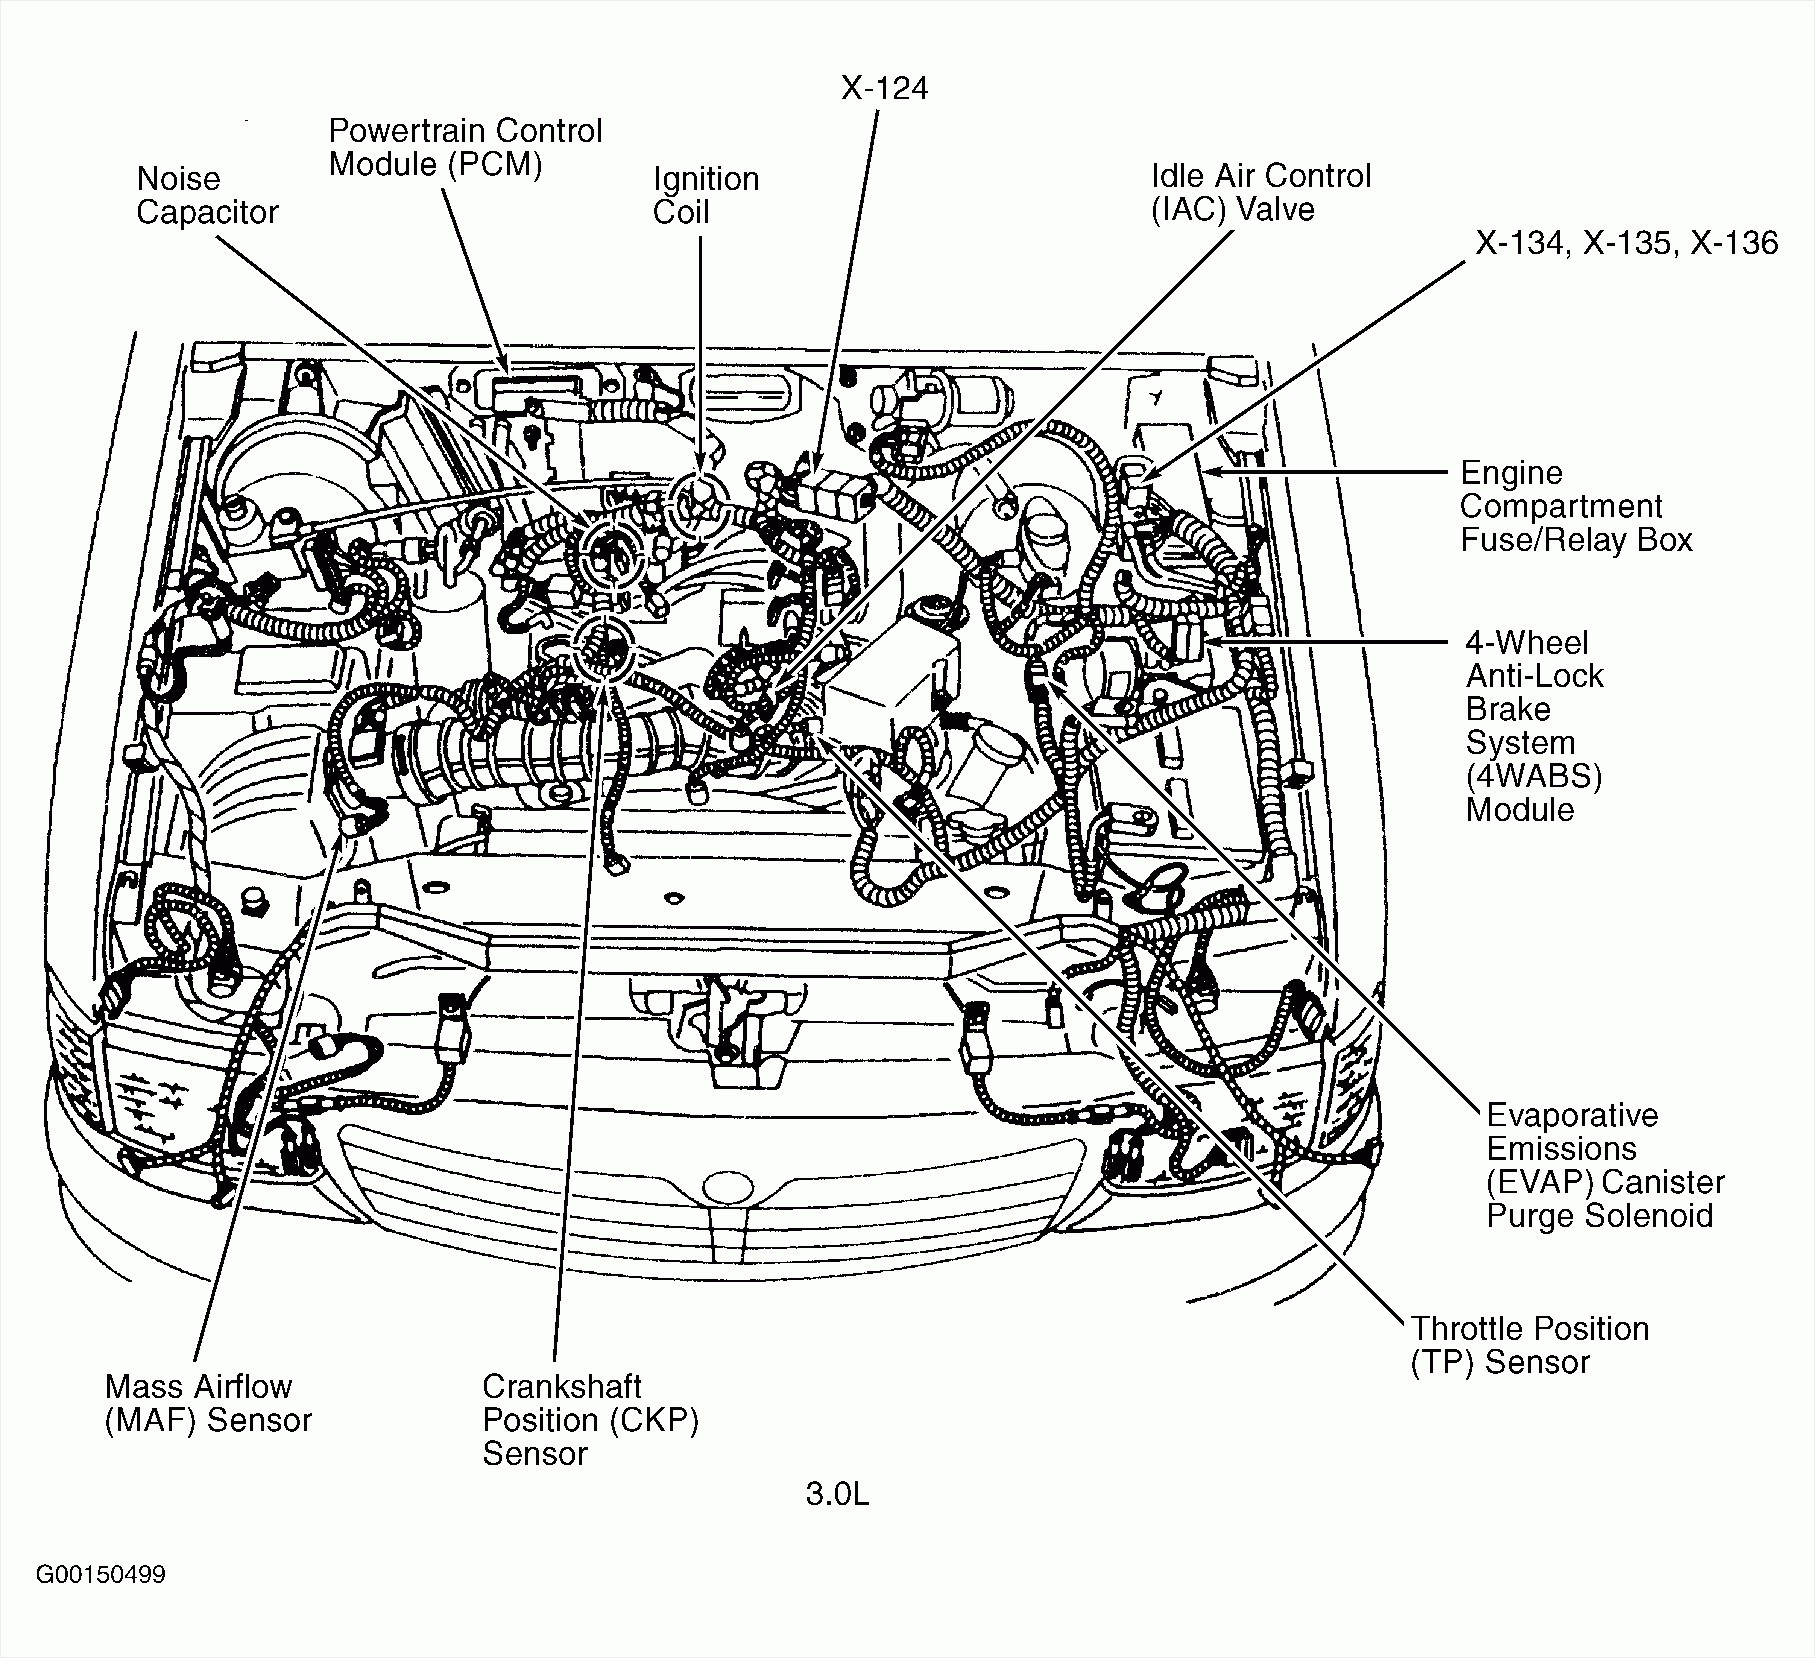 hight resolution of gm engine cooling diagram wiring diagram img 2000 chevy impala coolant diagram wiring diagram database gm